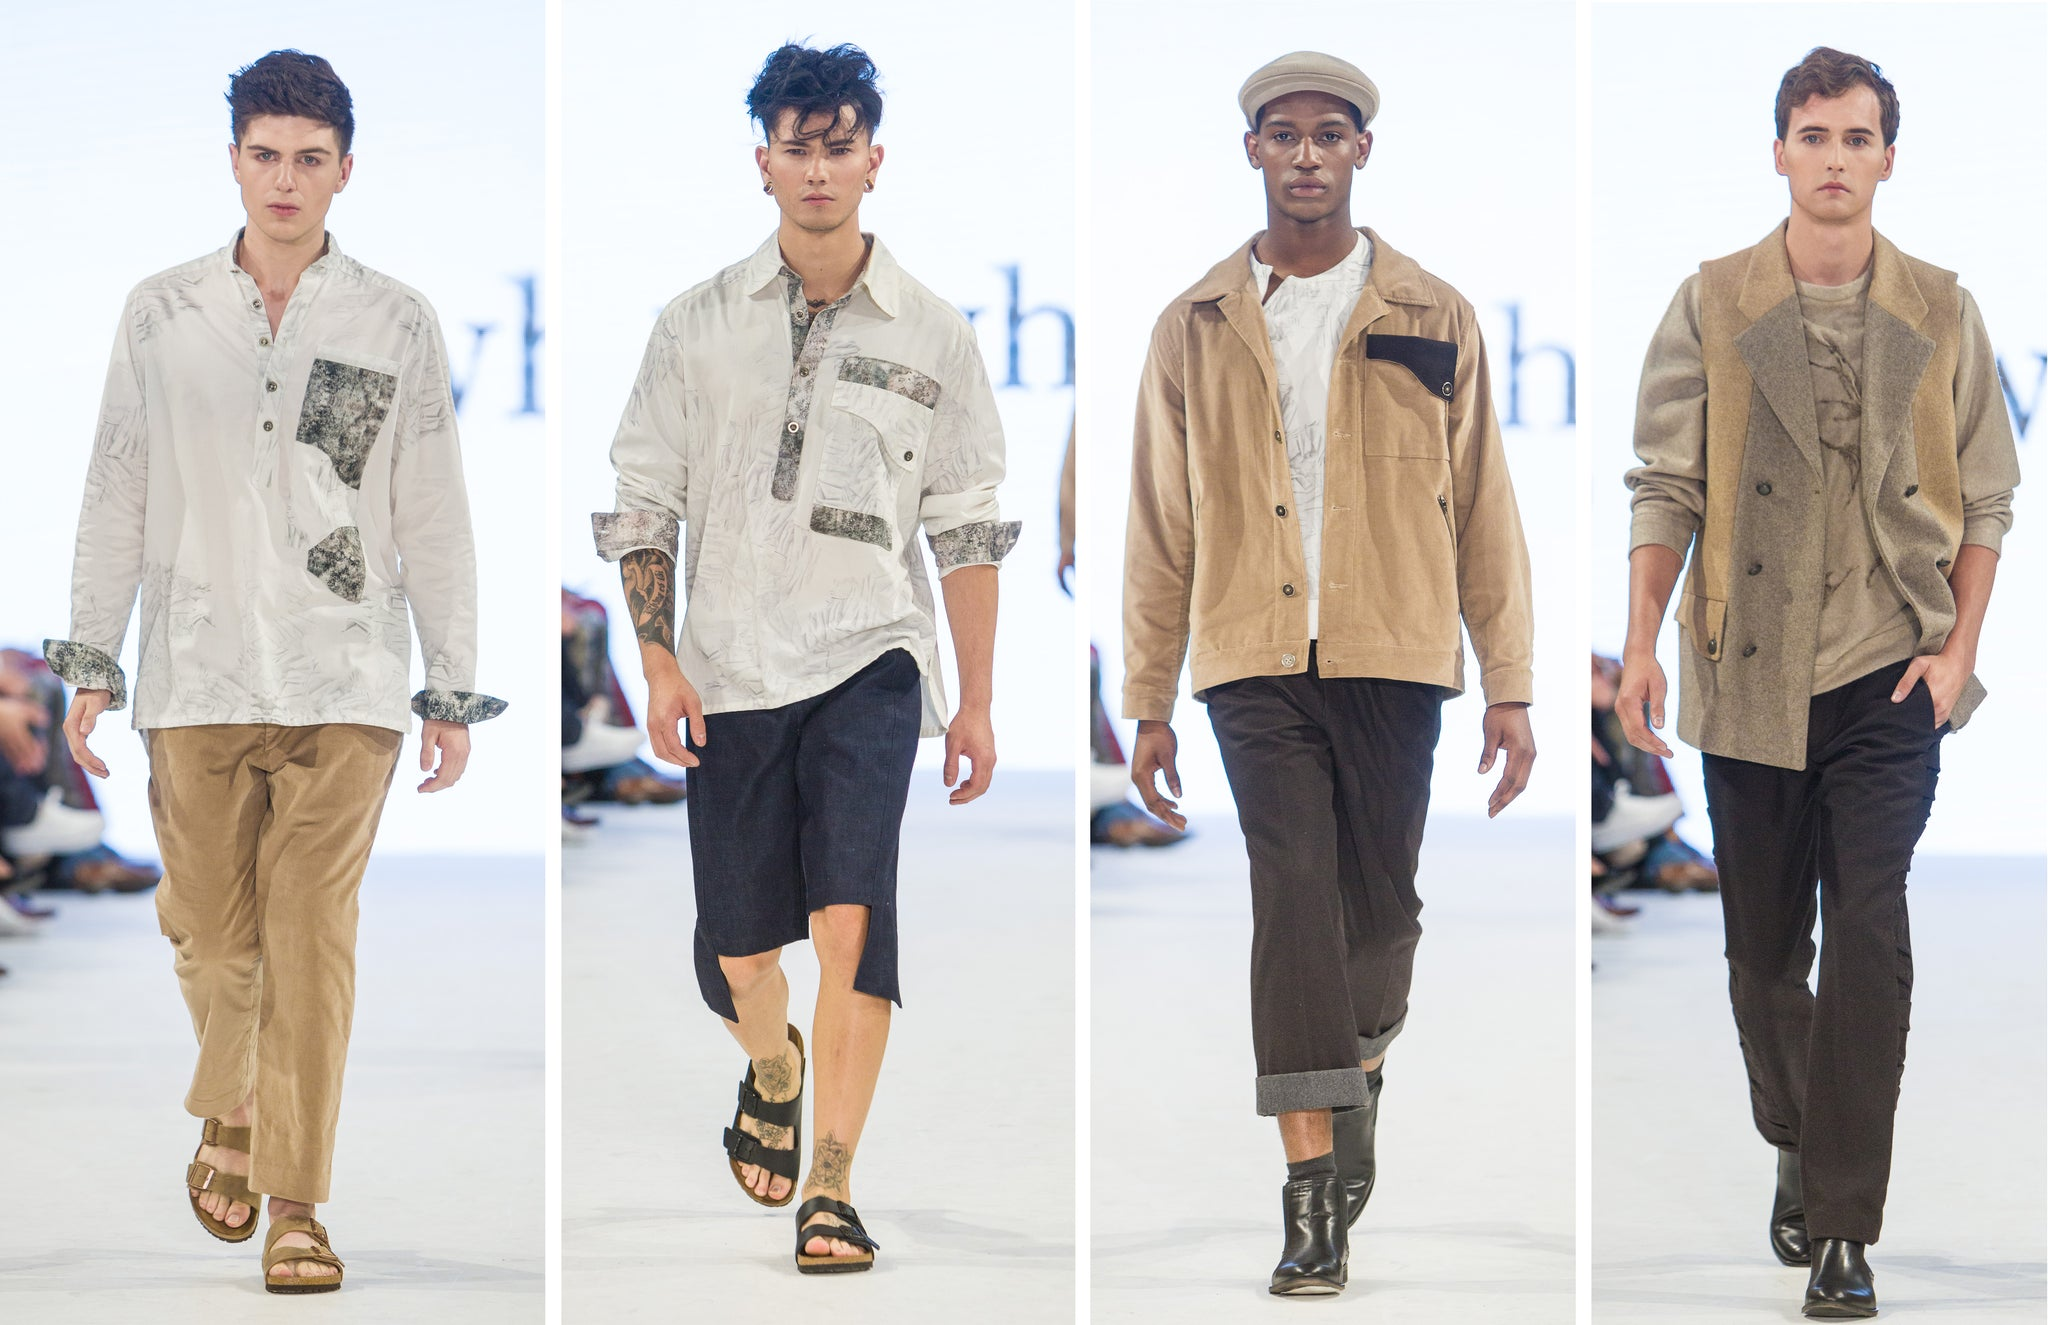 Runway at Toronto Men's Fashion Week showing Nowhere Studio's digital and handcrafted designs